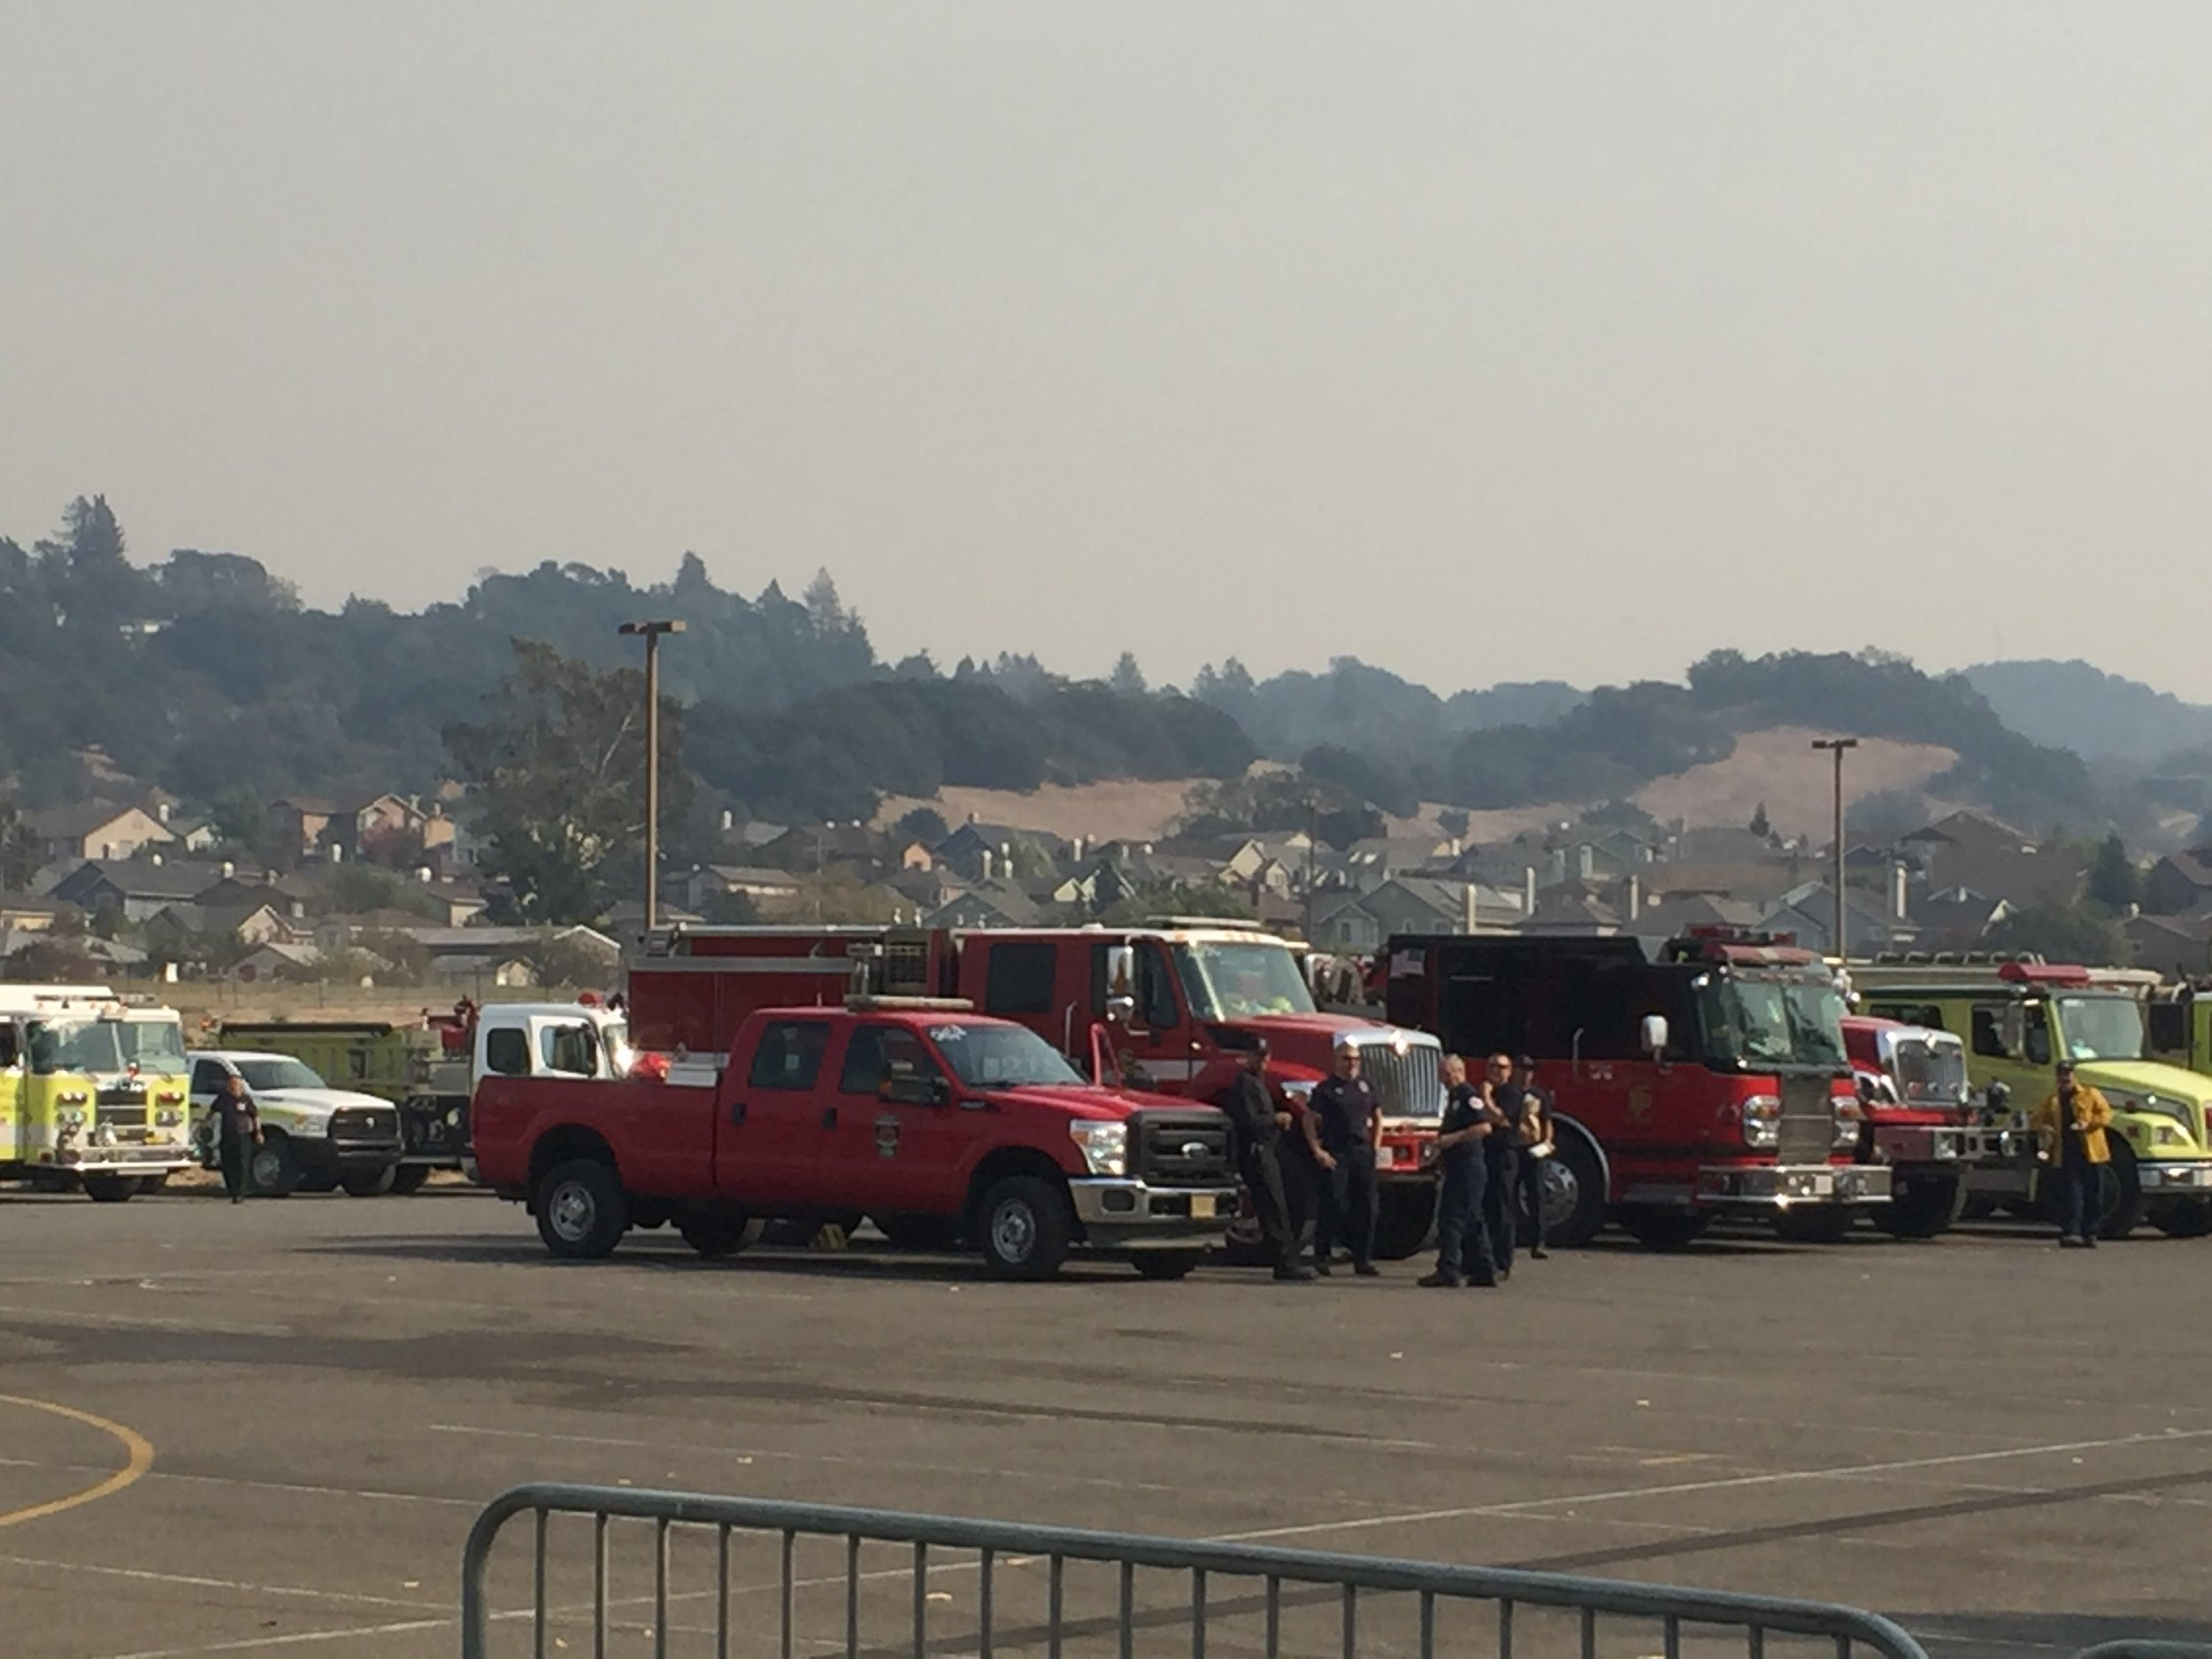 Santa Monica Fairgrounds Response Center Northbay fires 2.jpg